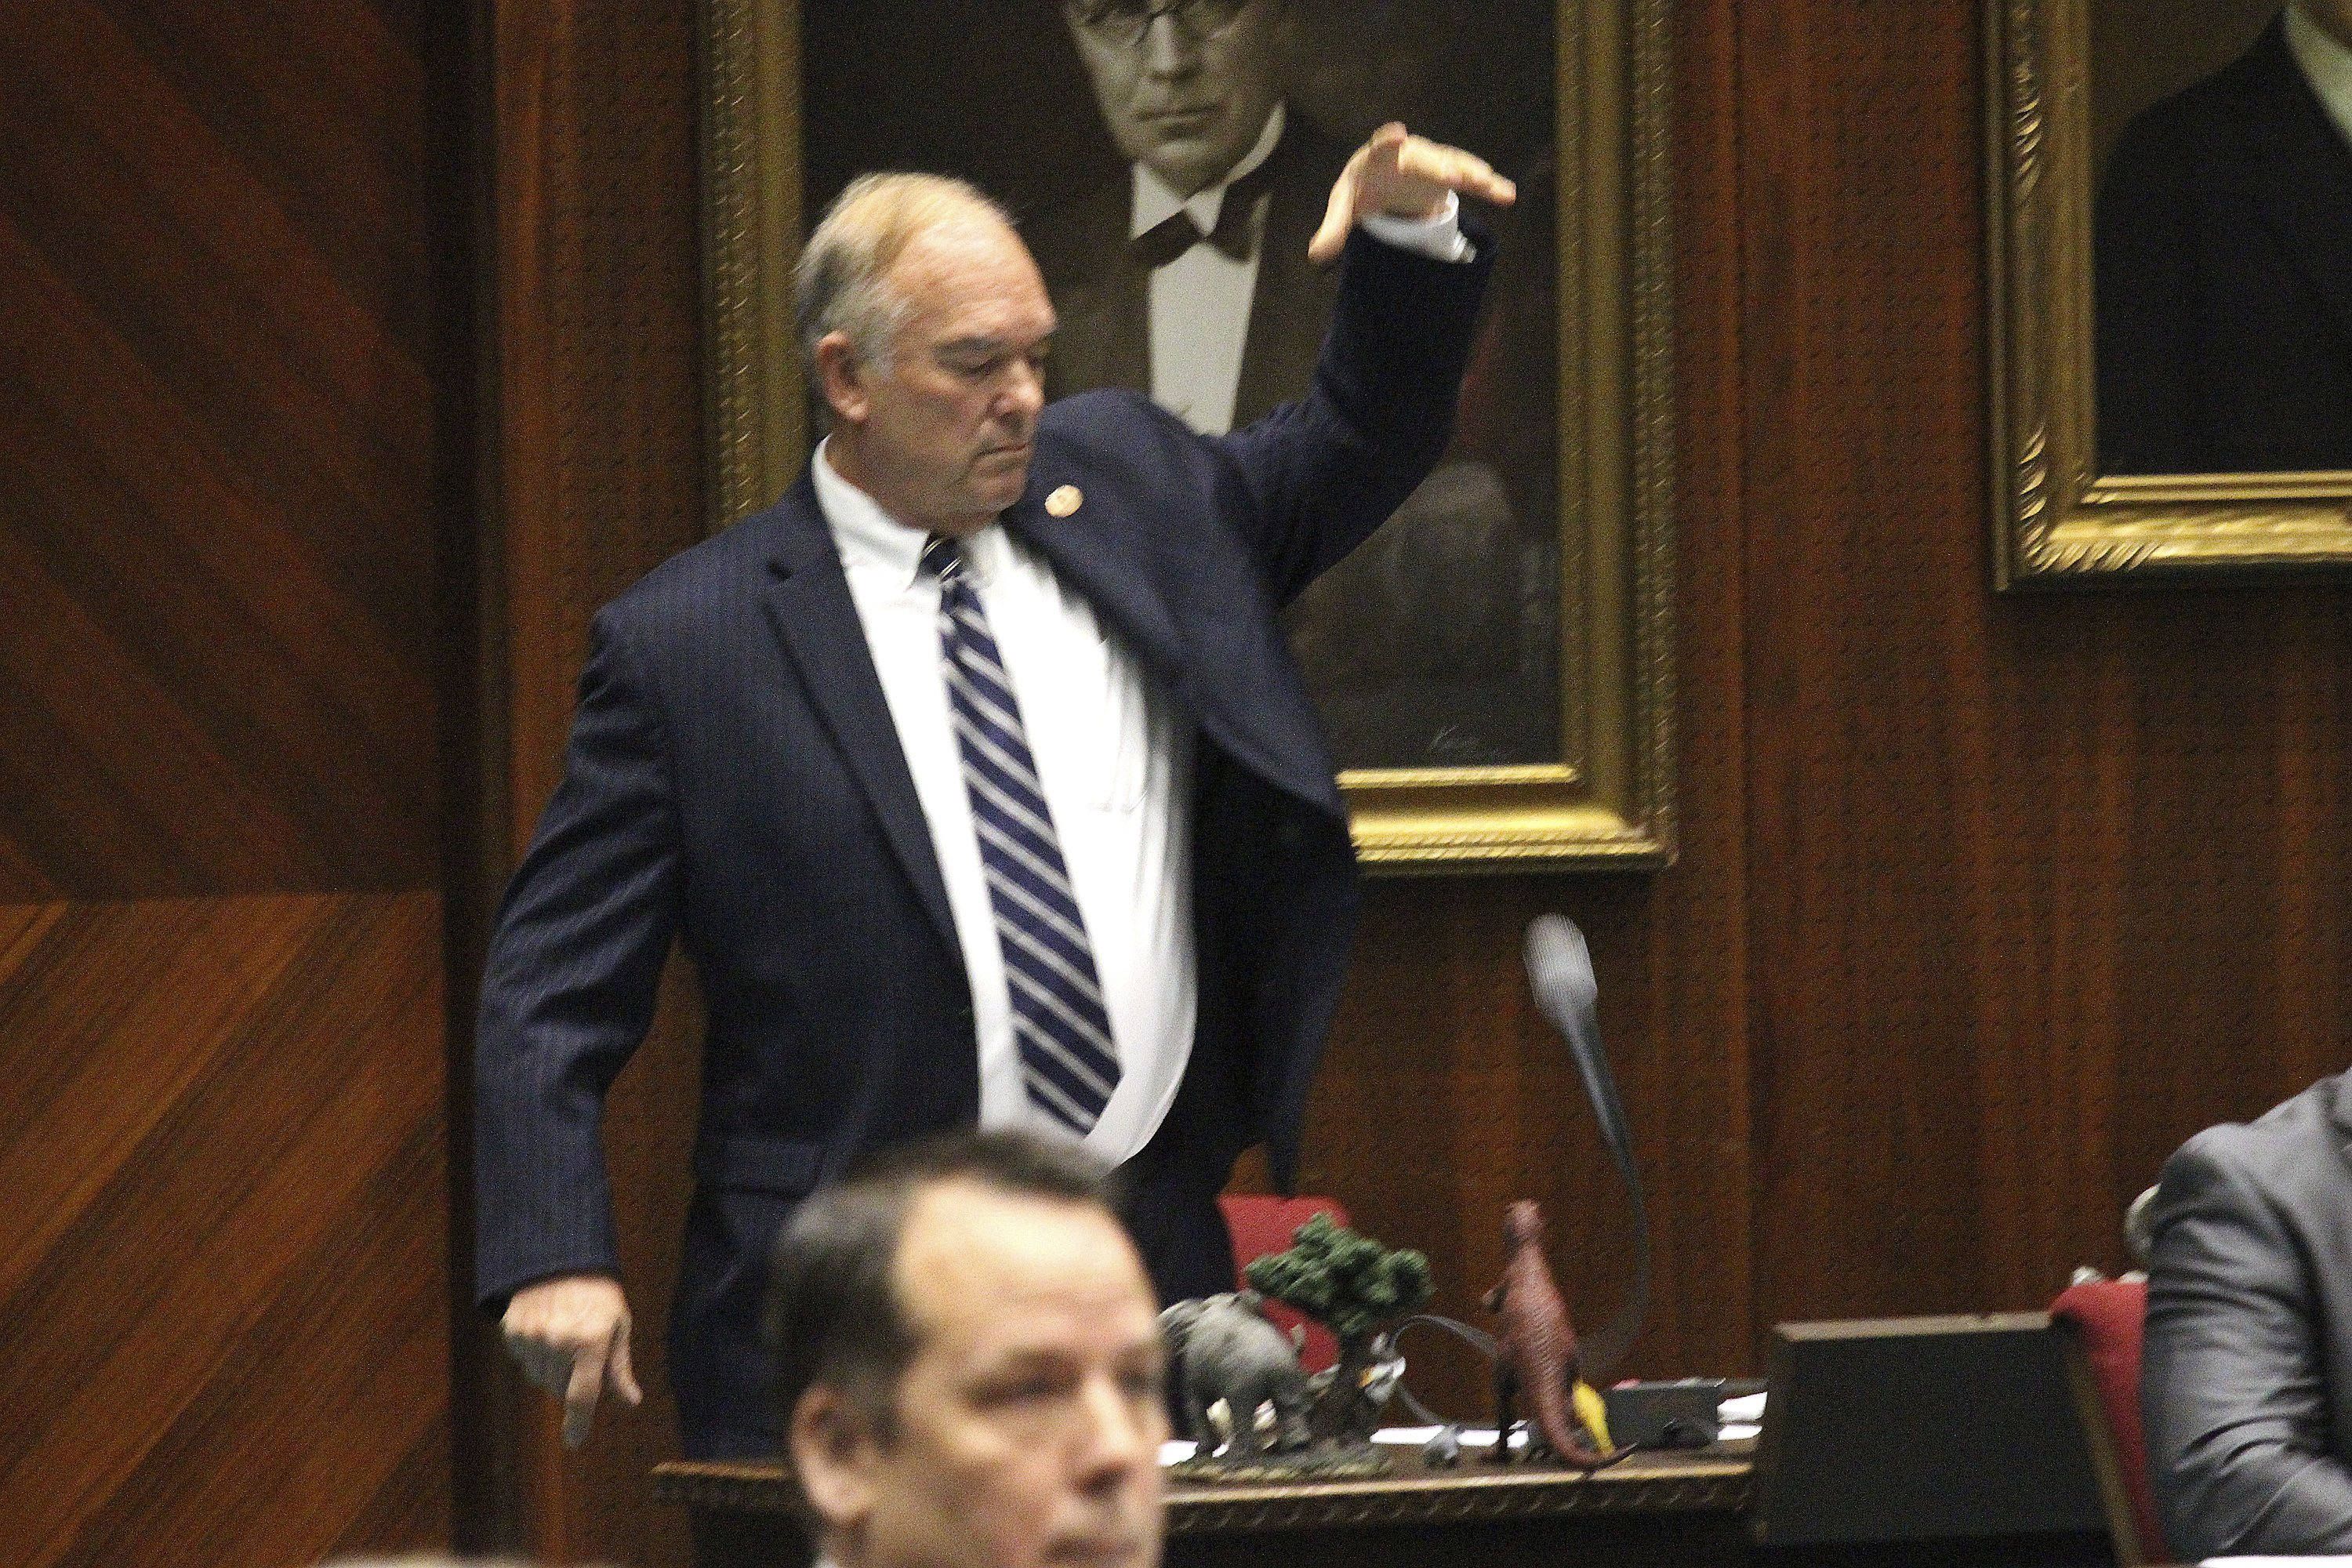 Arizona House kicks out Rep. Don Shooter over sex misconduct